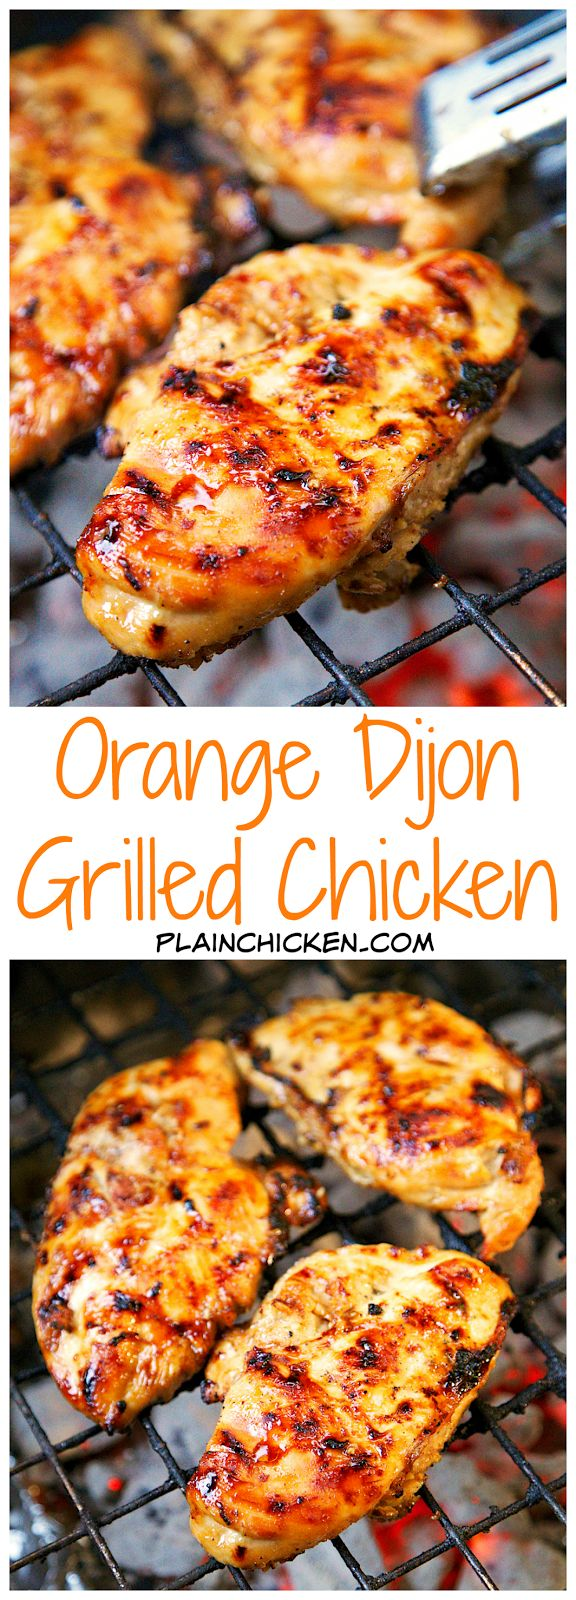 Orange Dijon Grilled Chicken - So versatile! Great on its own or in quesadillas, tacos, or on top of a salad.